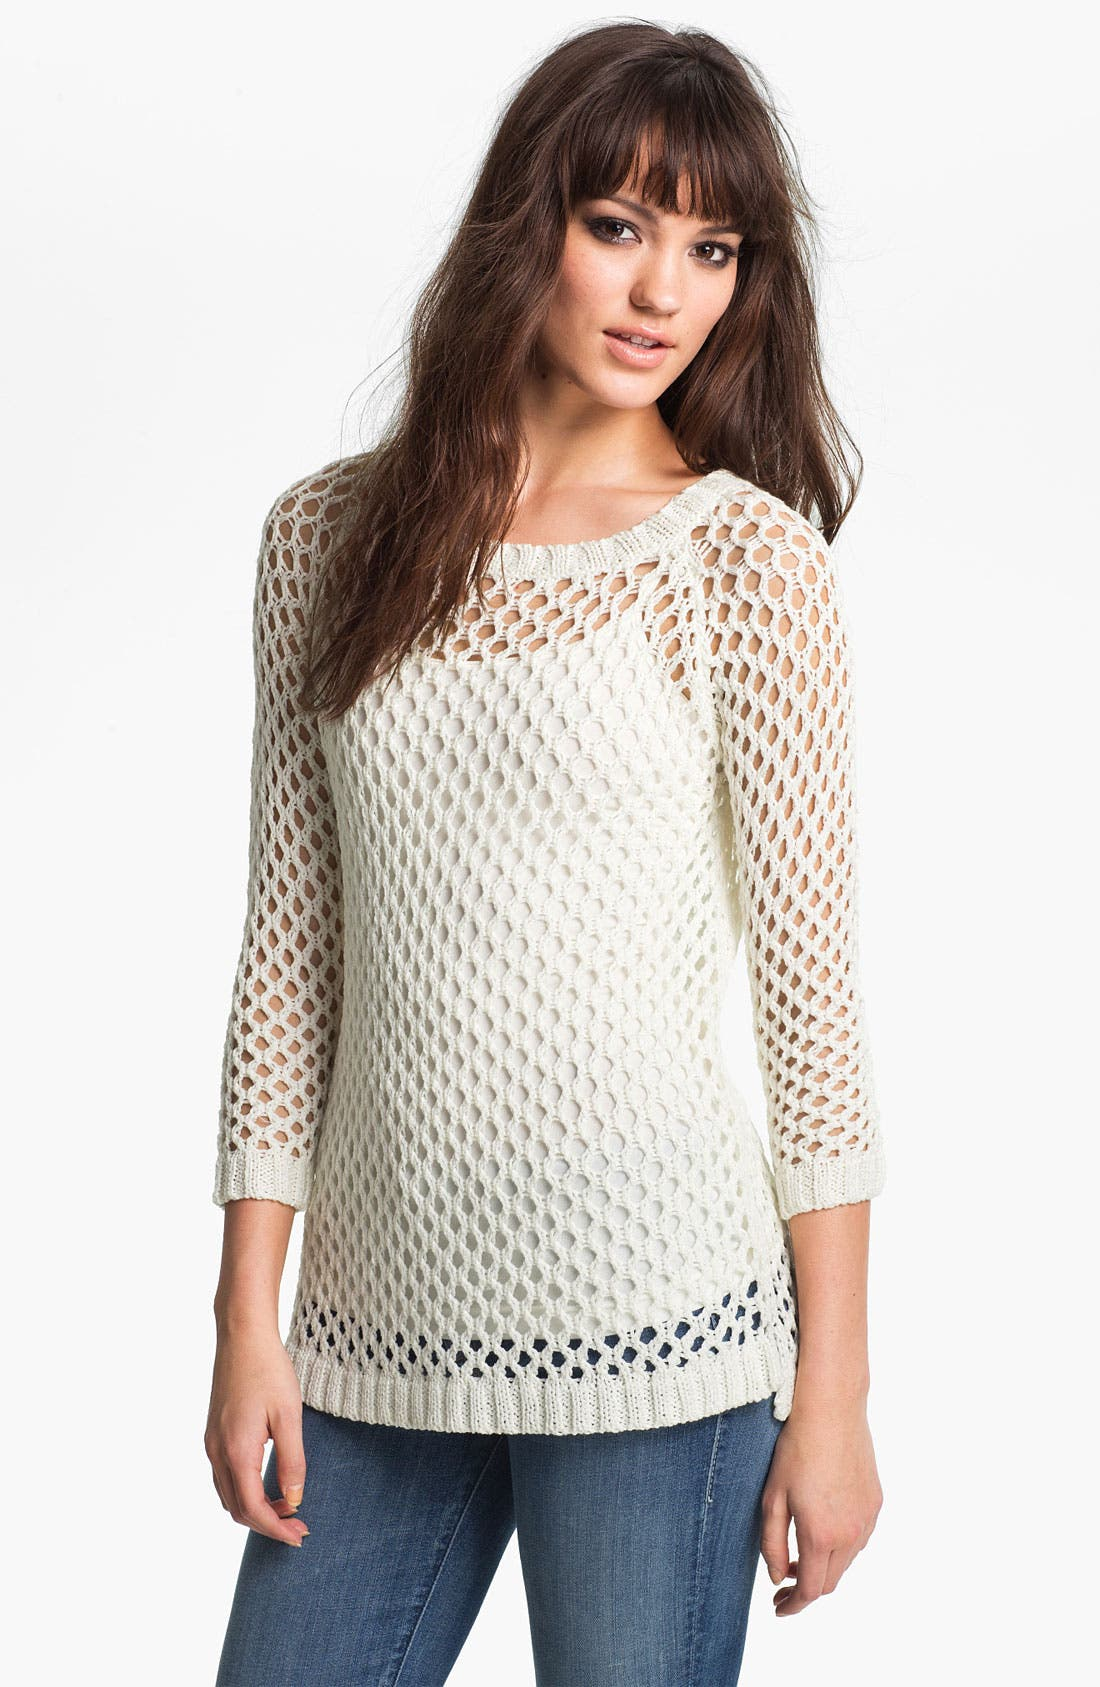 Main Image - Soft Joie 'Addler' Net Knit Sweater